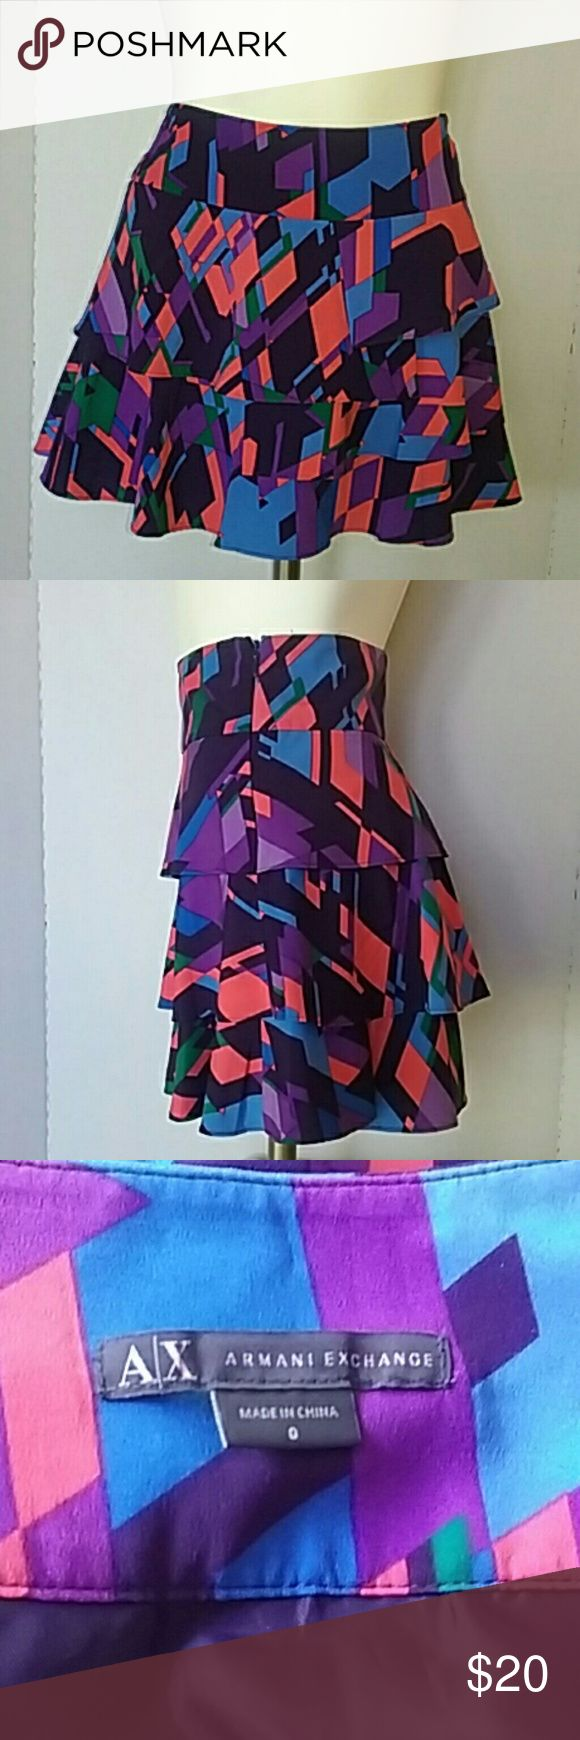 """A/X Armani Exchange Skirt A/X, Beautiful Ruffled Skirt.  Multicolor.  Lined, zipper at side. Measurement  Aprox. 14"""" waistlines (side to side)  13 1/2"""" Length.  Thanks for your interes. A/X Armani Exchange Skirts Mini"""